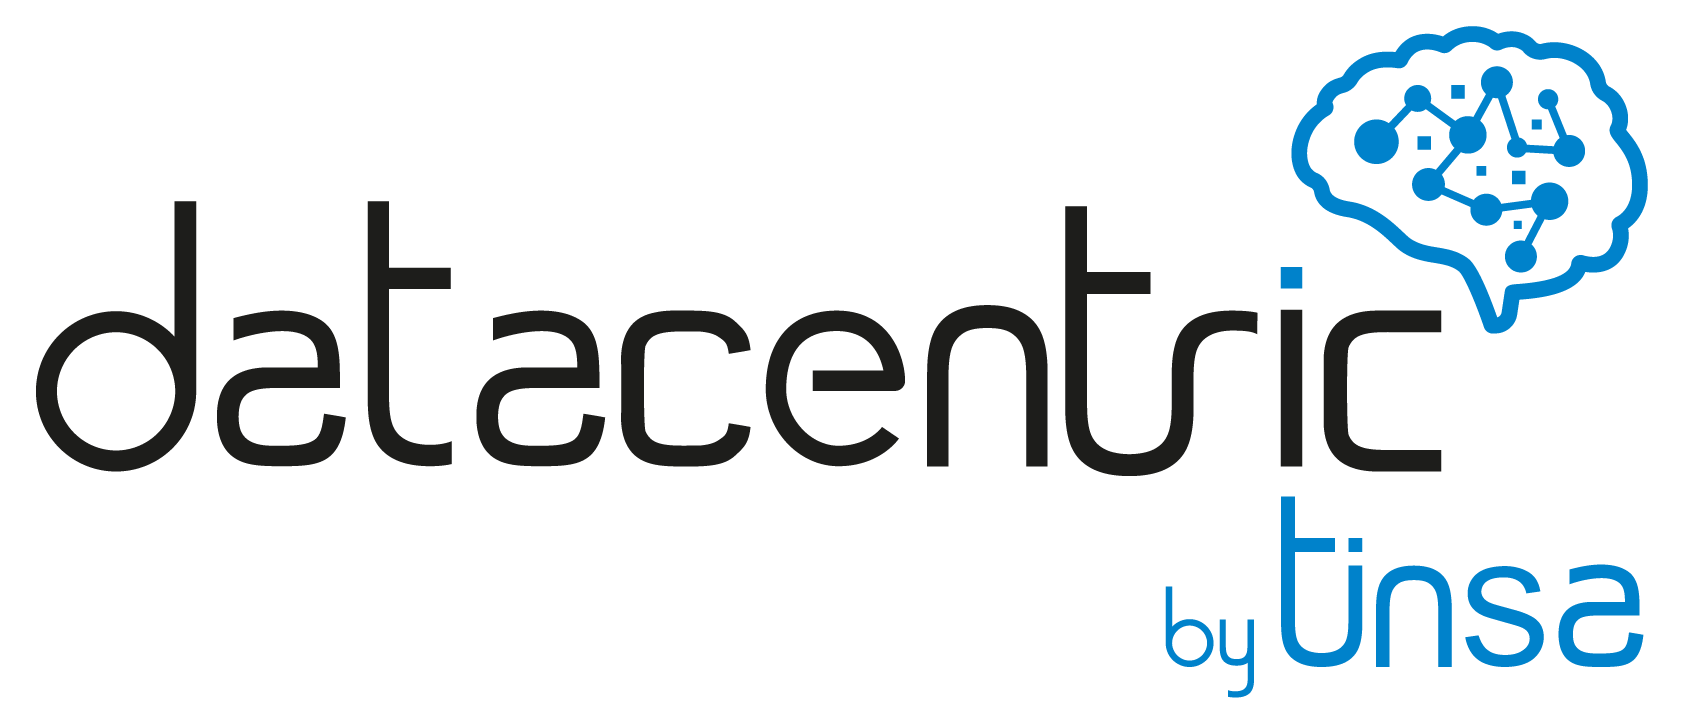 DataCentric, the data solutions company of the Tinsa Group, launches new corporate identity and website.